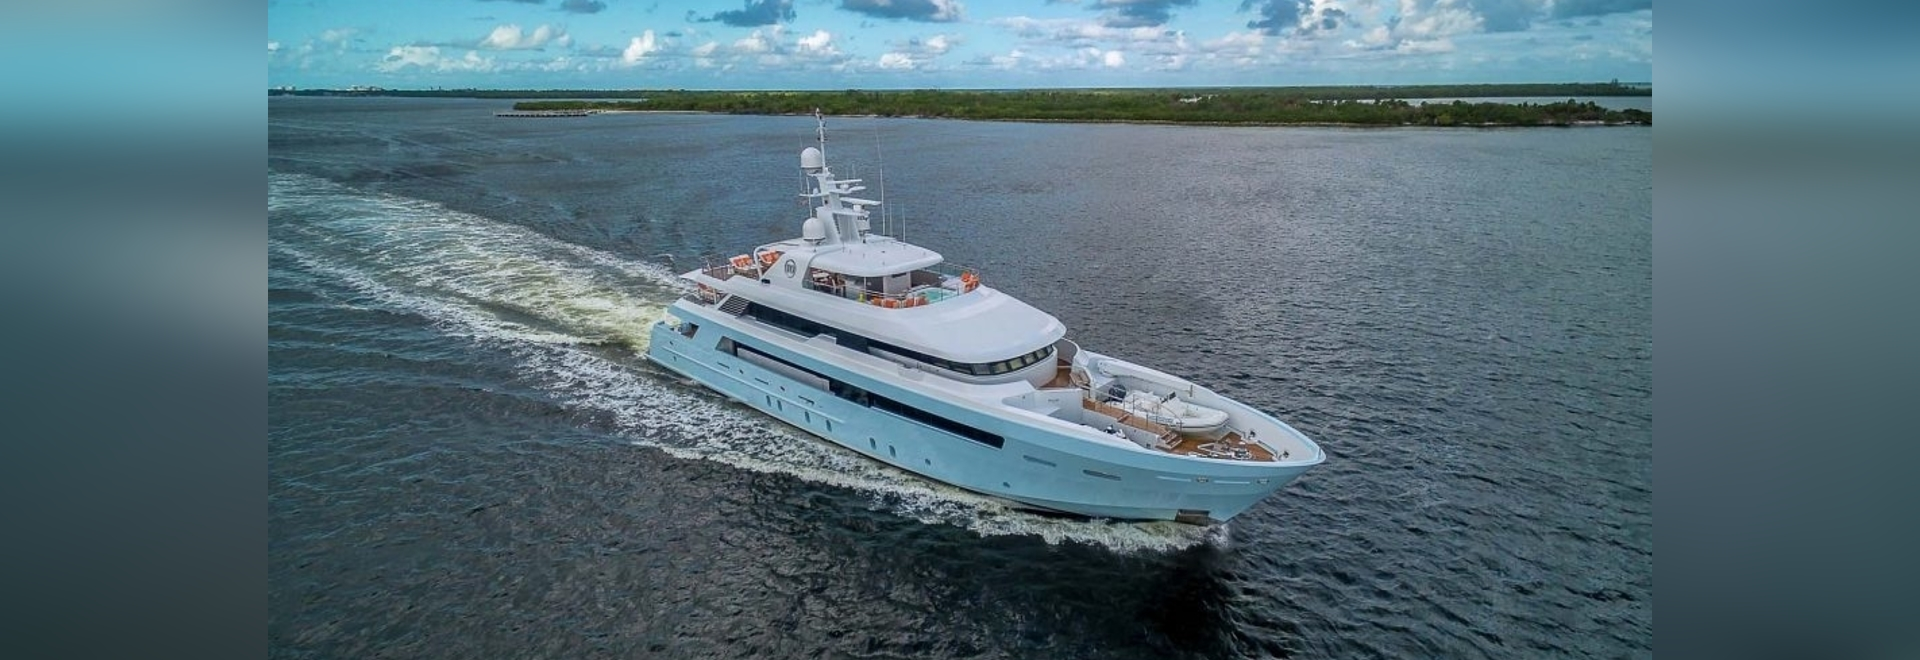 Zu verkaufen in Florida: 46m Delta Marine Motoryacht Time For Us